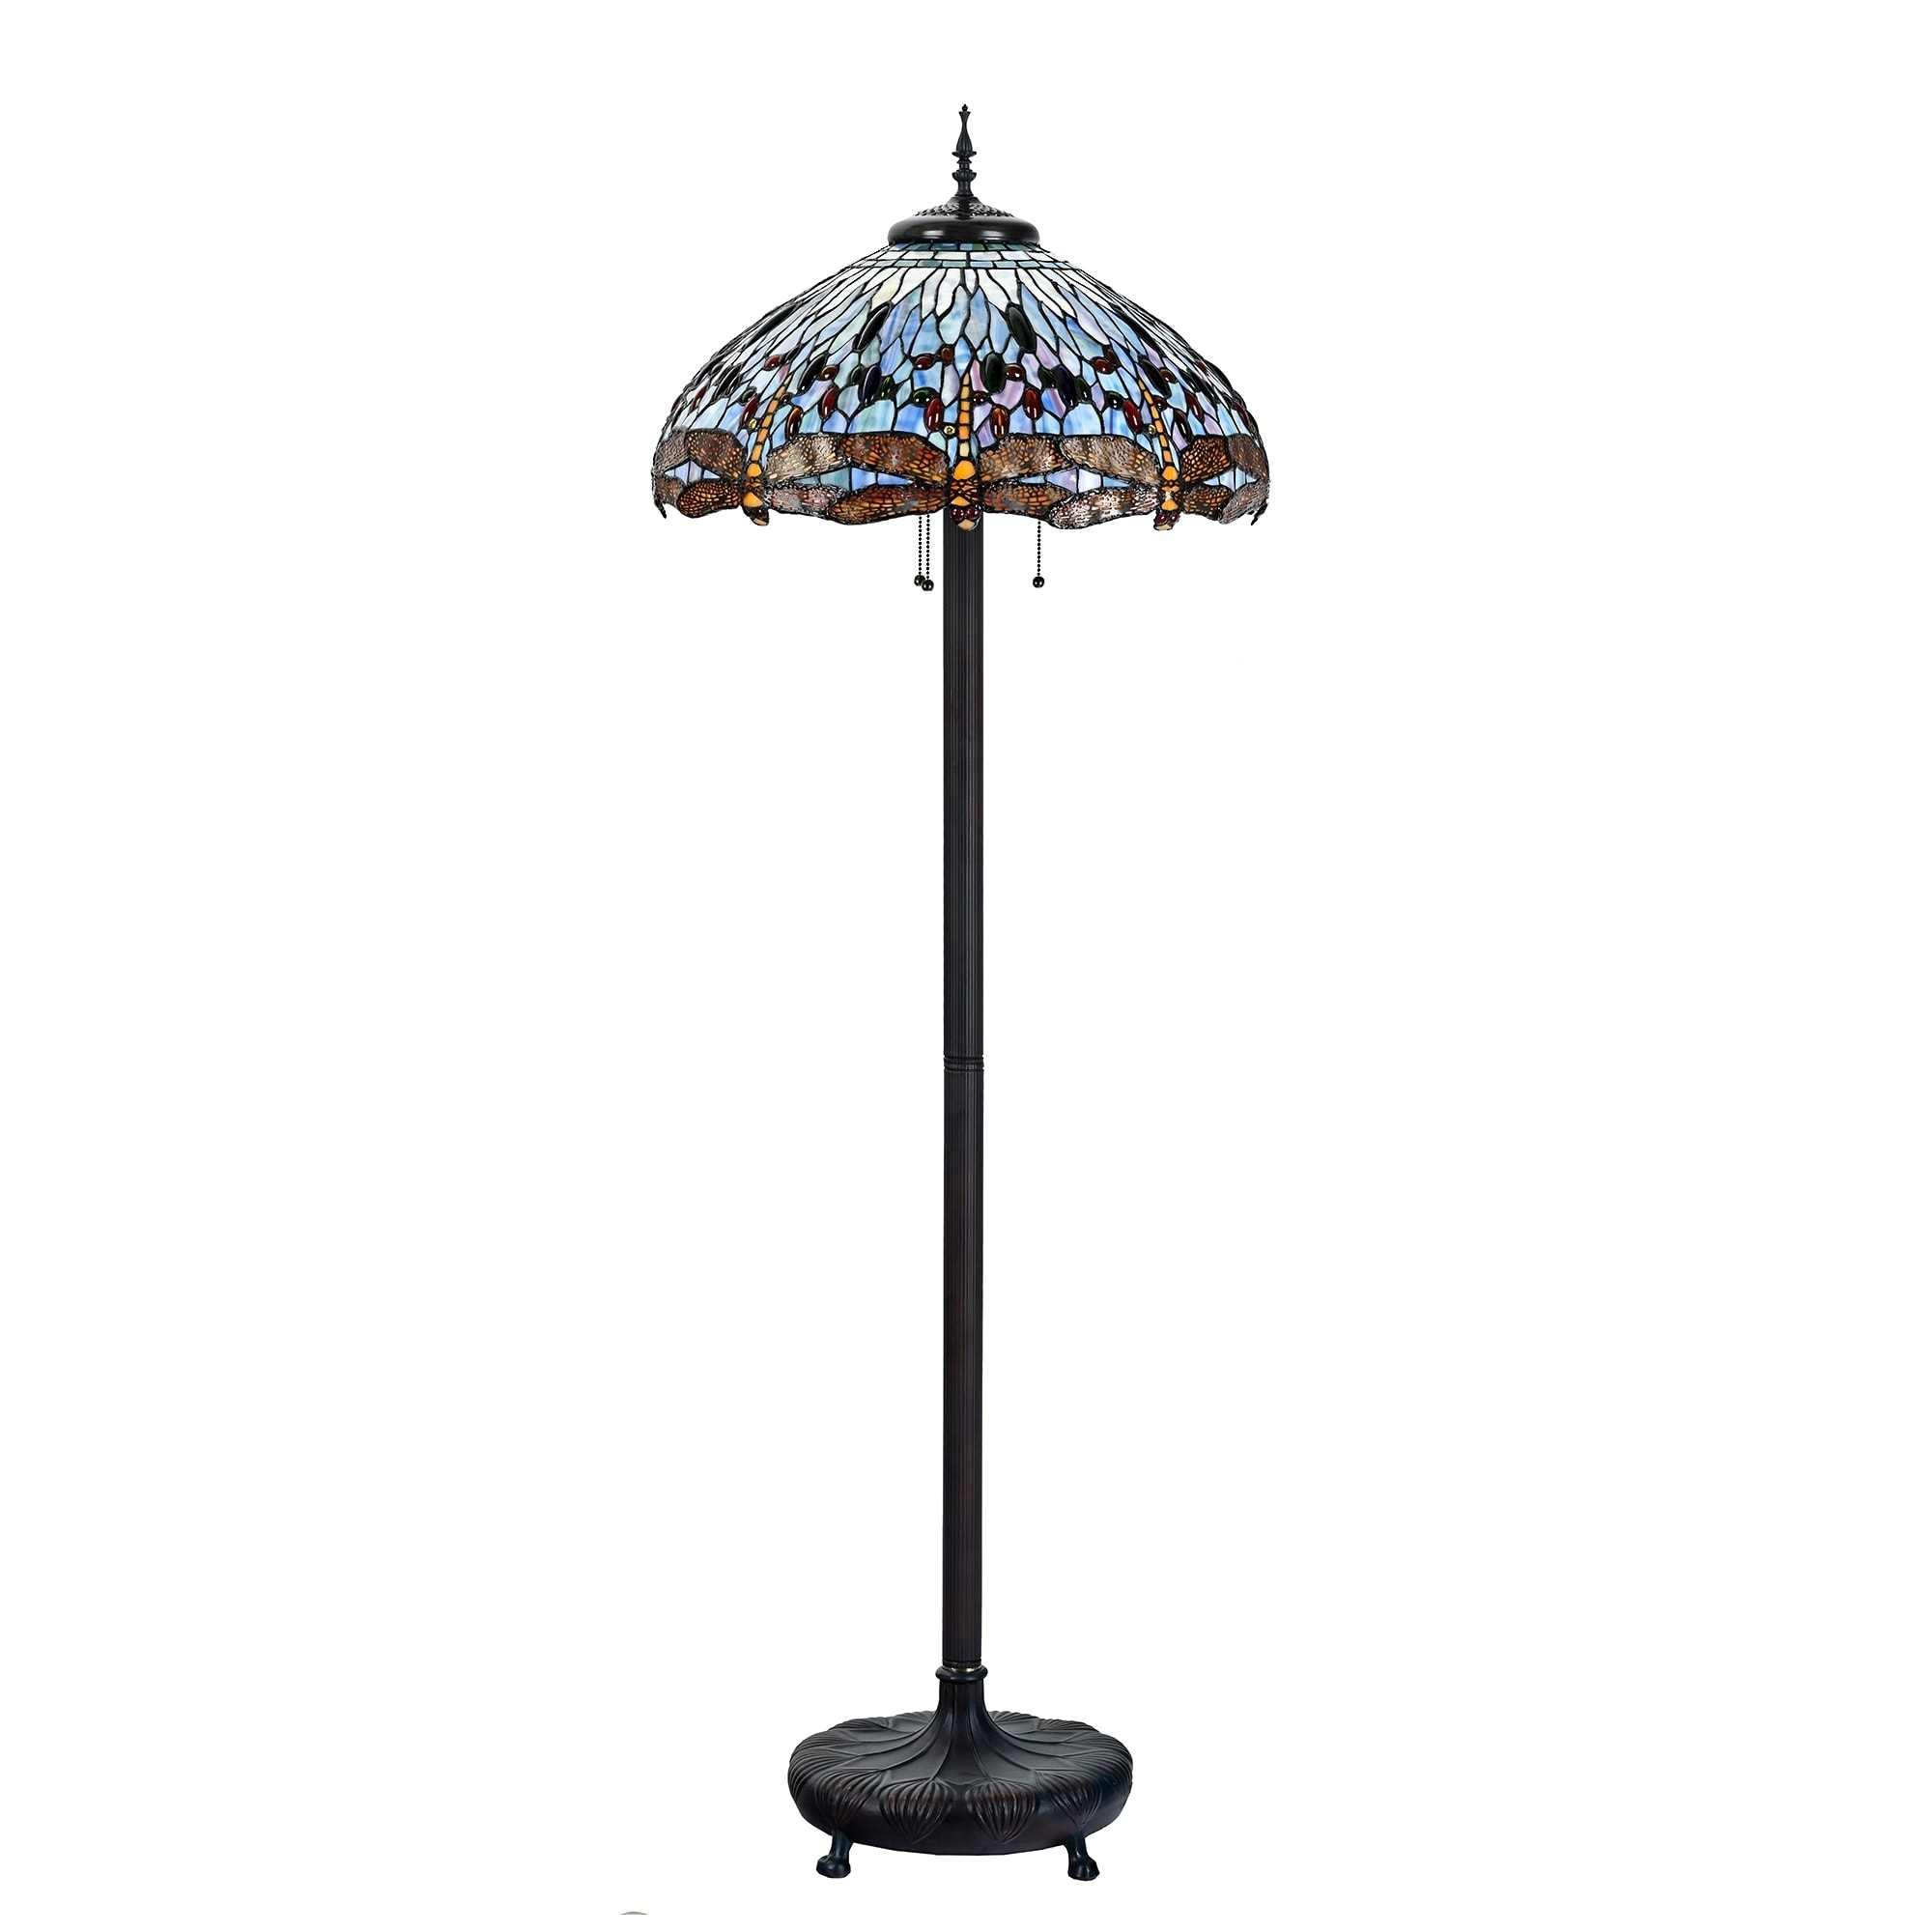 Shop Black Friday Deals On Tiffany Style 22 Inch Lampshade Floor Lamp Victorian Dragonfly Lamp Home Decor Stained Glass Lighting Overstock 24230057